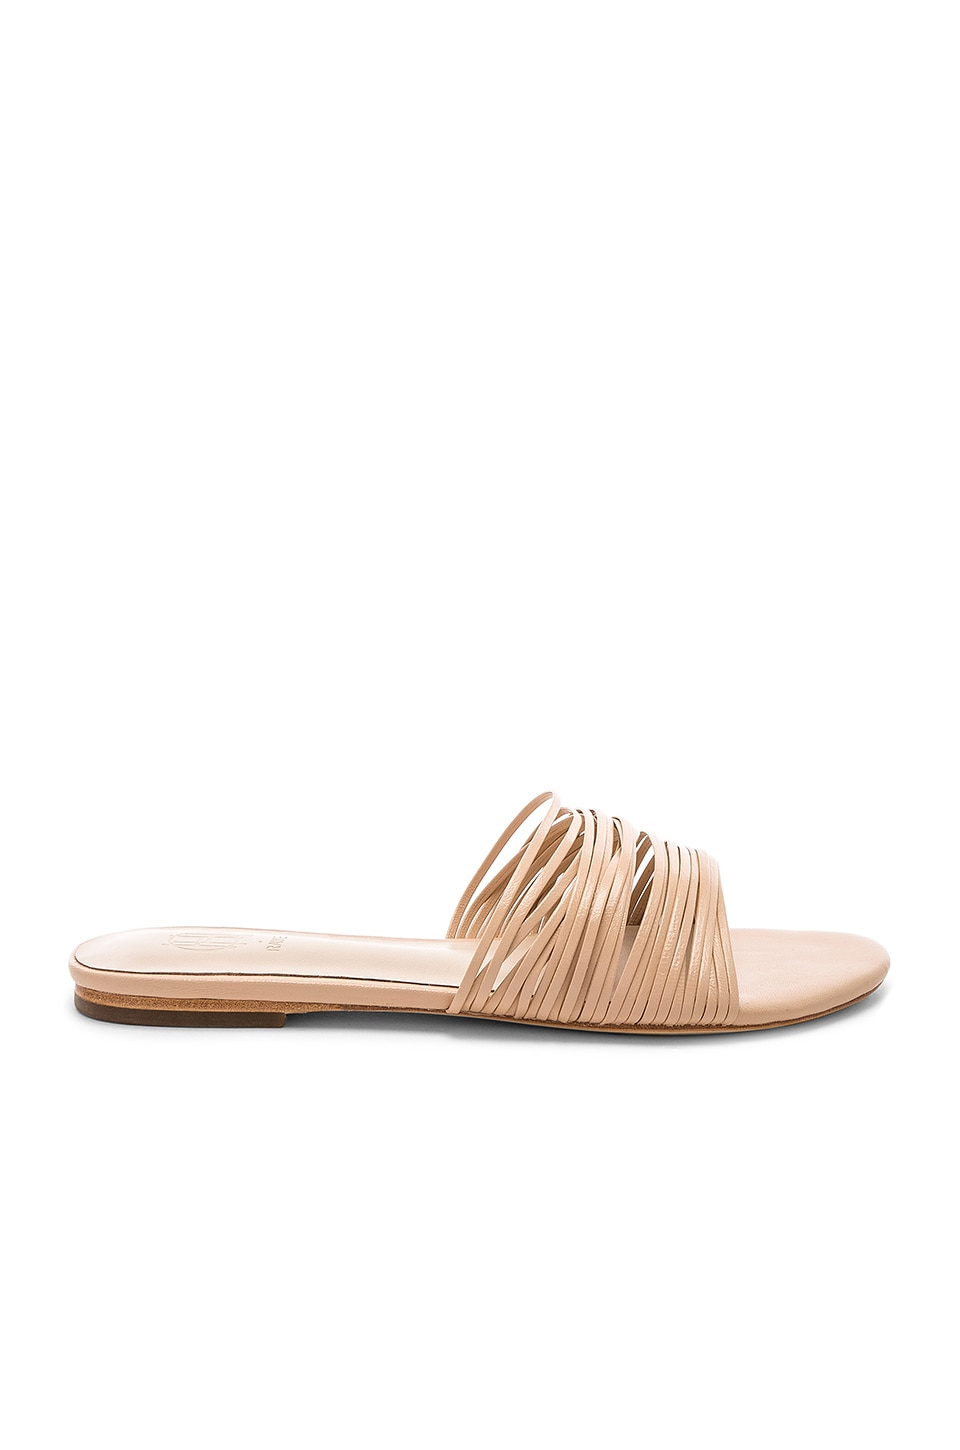 RAYE x House Of Harlow 1960 Lillo Slide in Nude